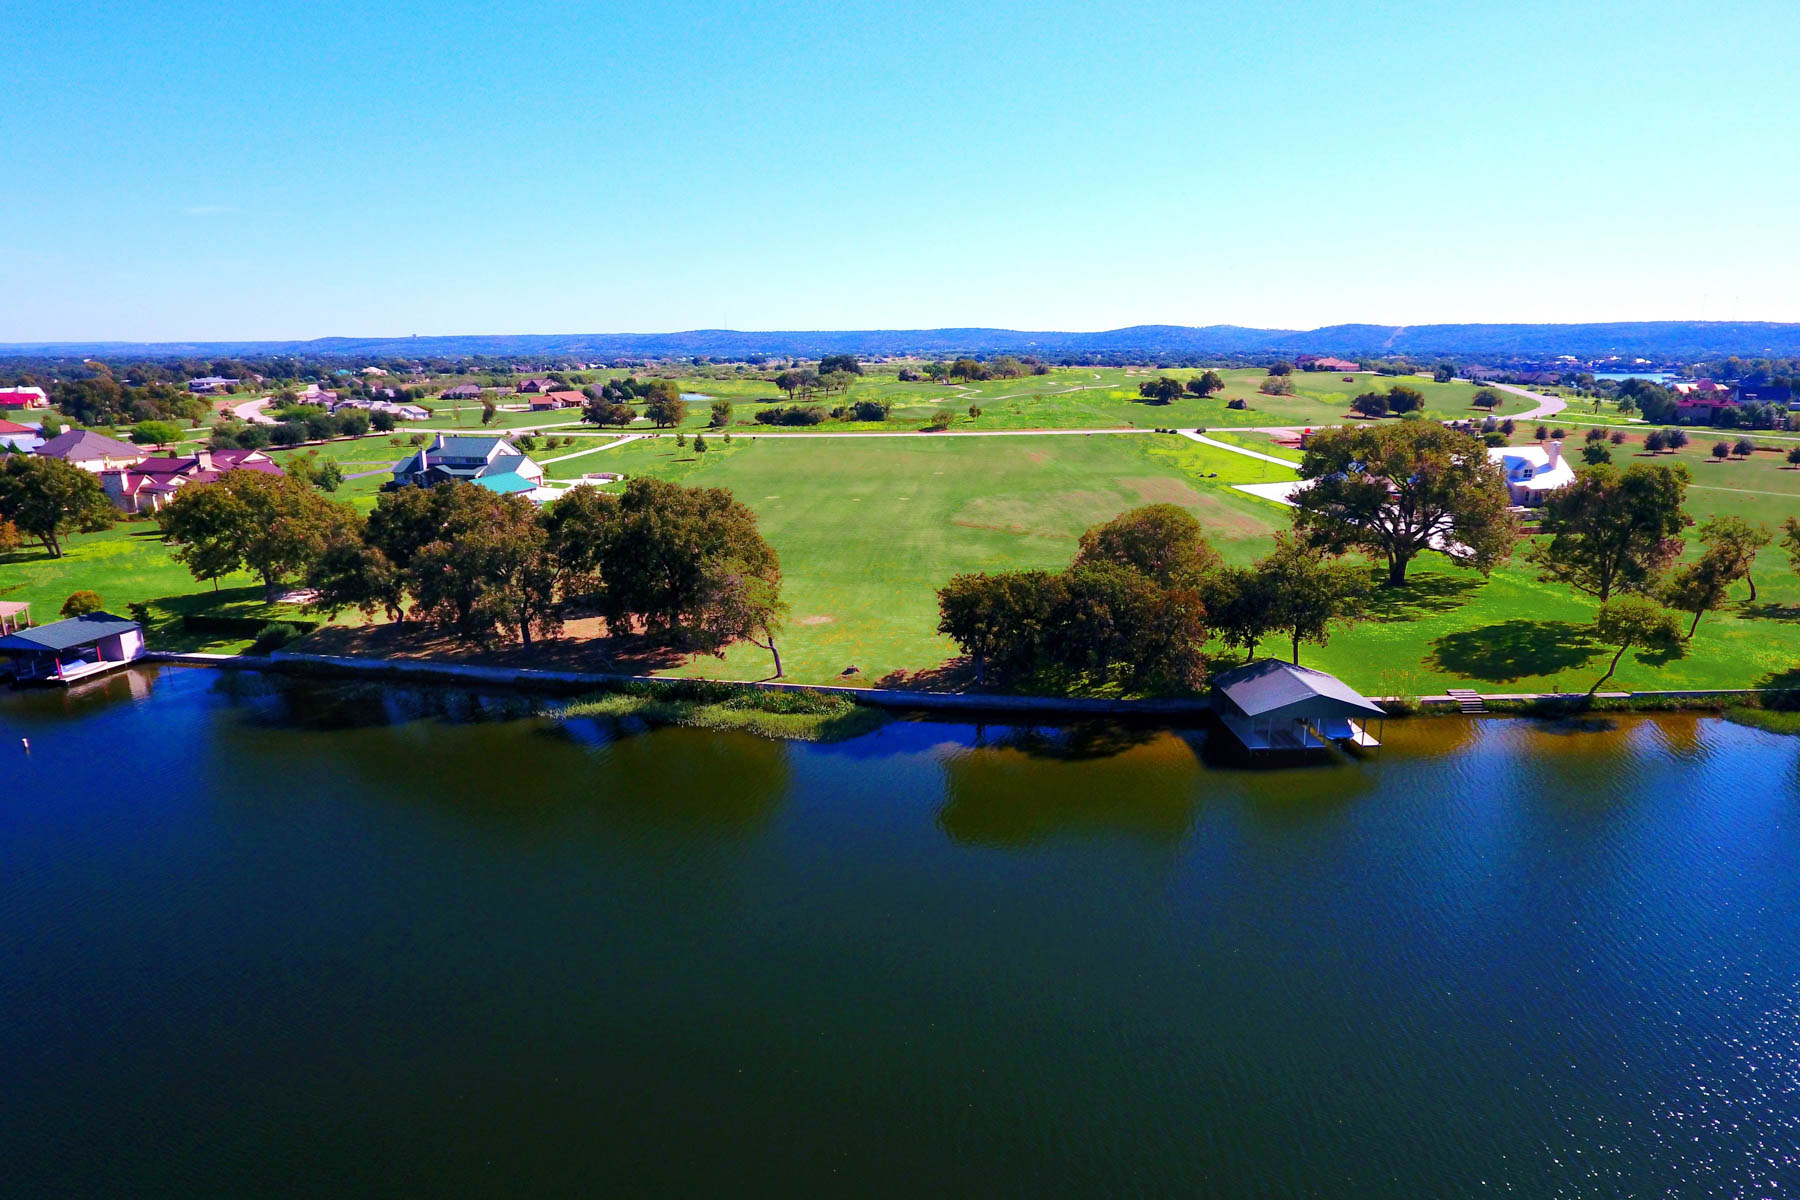 Land for Sale at Exceptional Waterfront Estate Site in The Legends on Lake LBJ Lot 1040 Legends Pkwy Kingsland, Texas 78639 United States